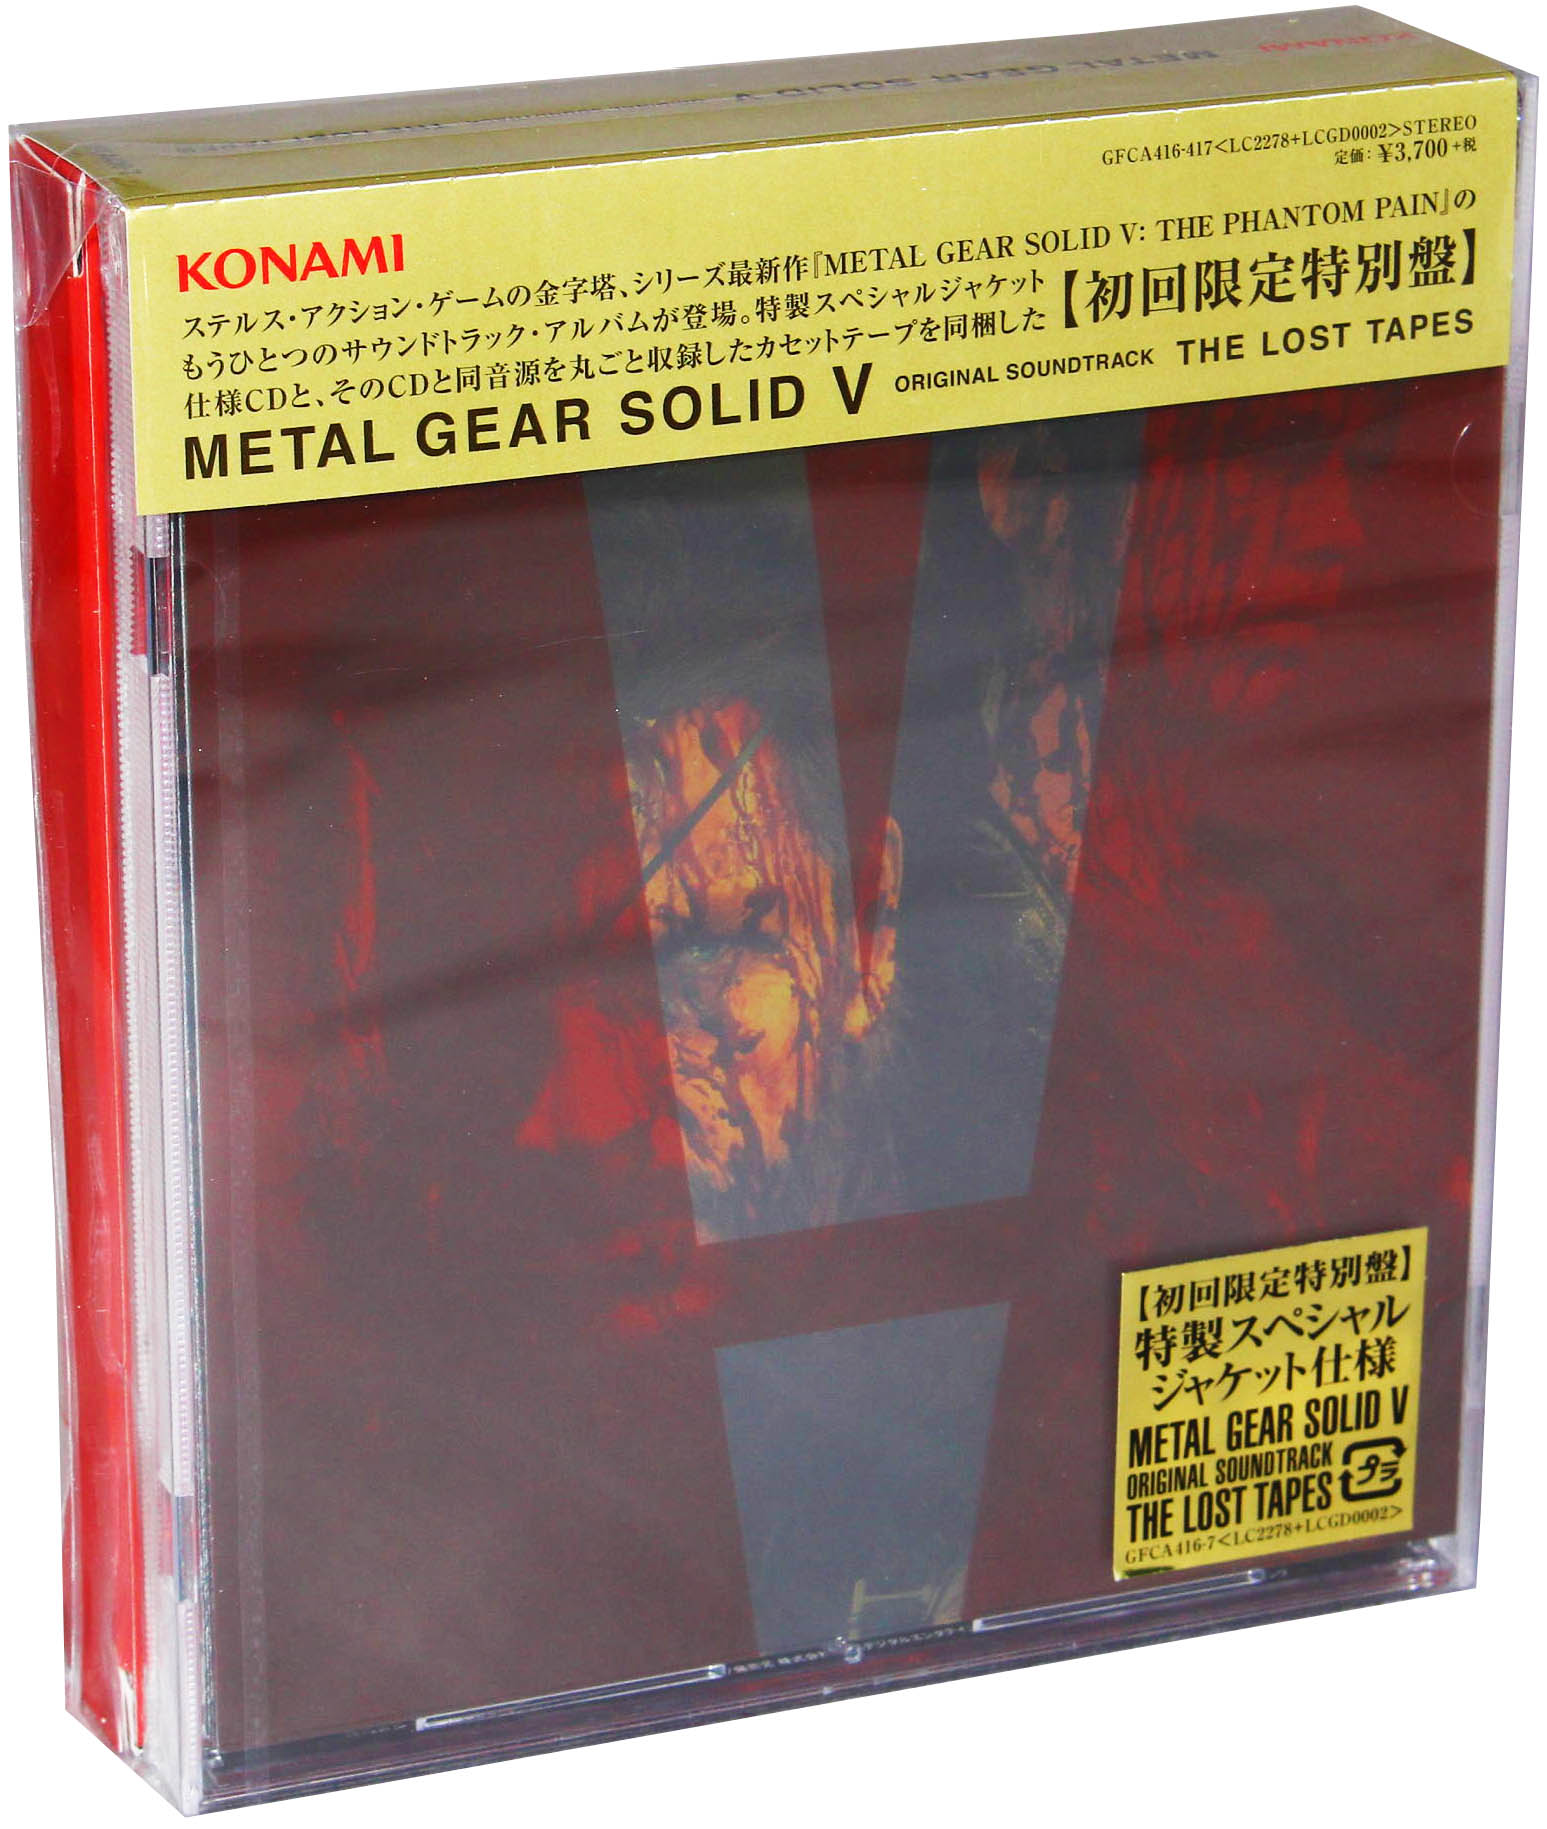 Metal Gear Solid V Original Soundtrack The Lost Tapes (Limited Edition) Вид спереди